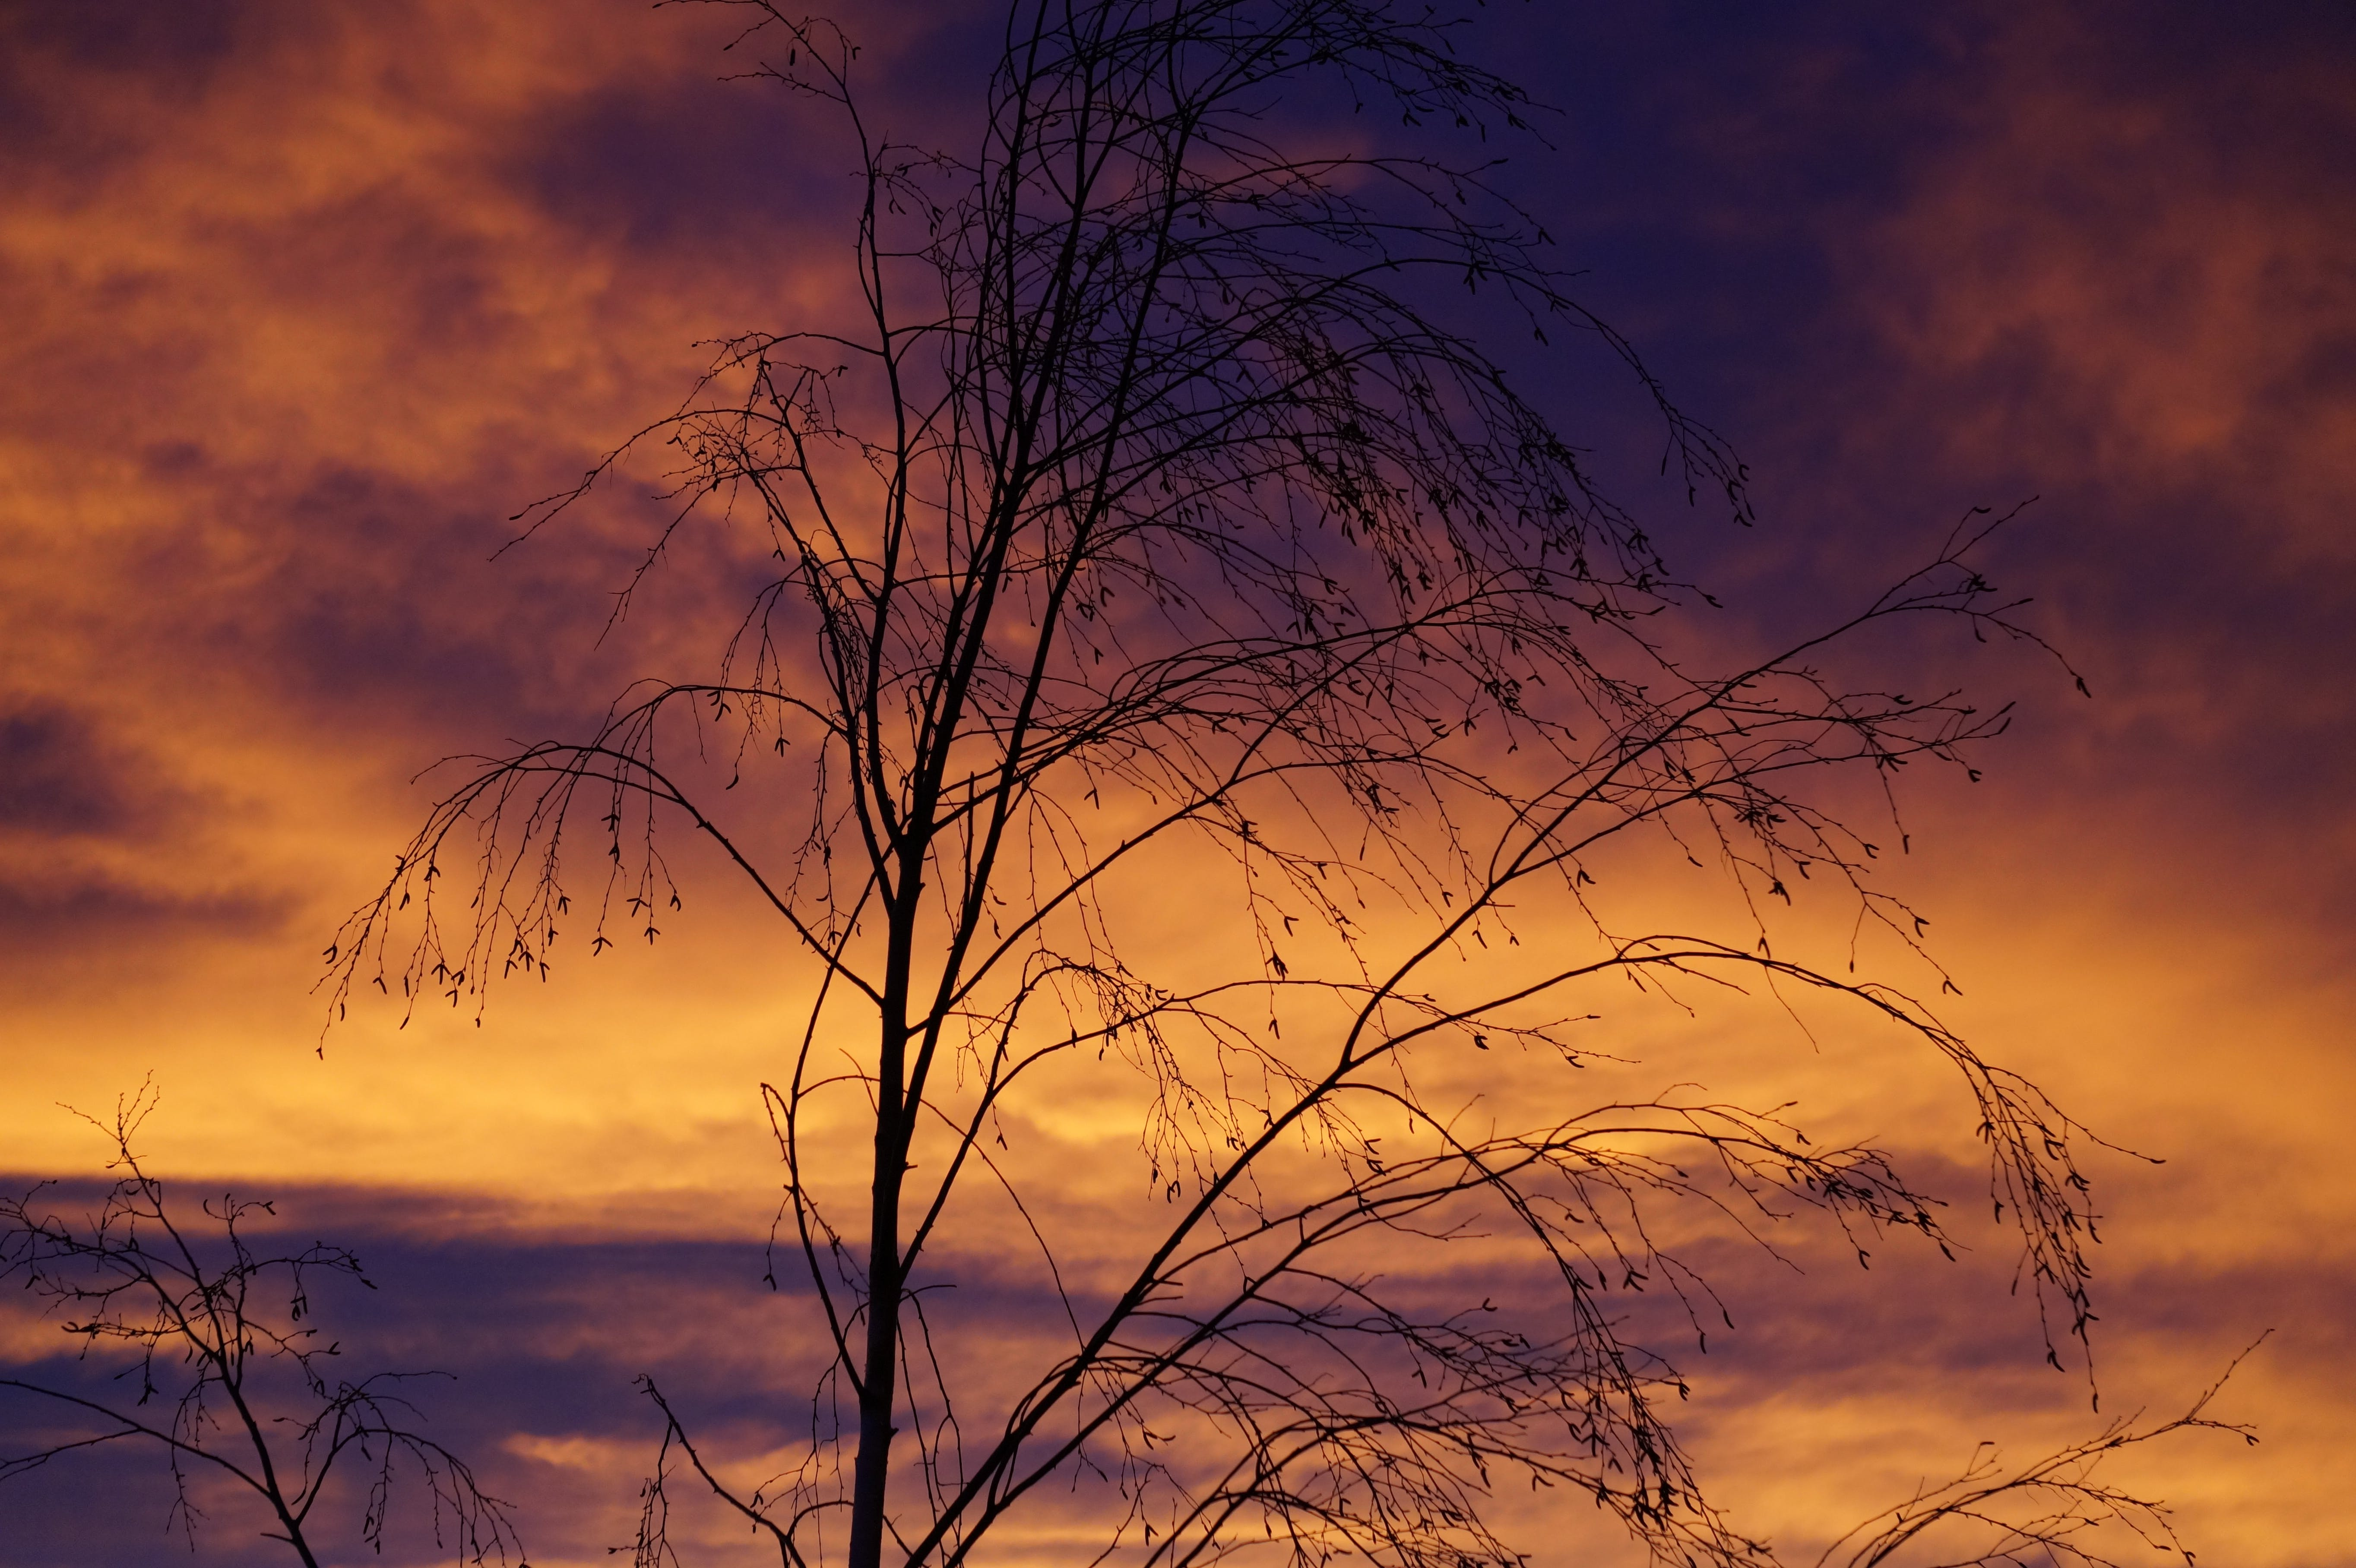 Black Withered Tree